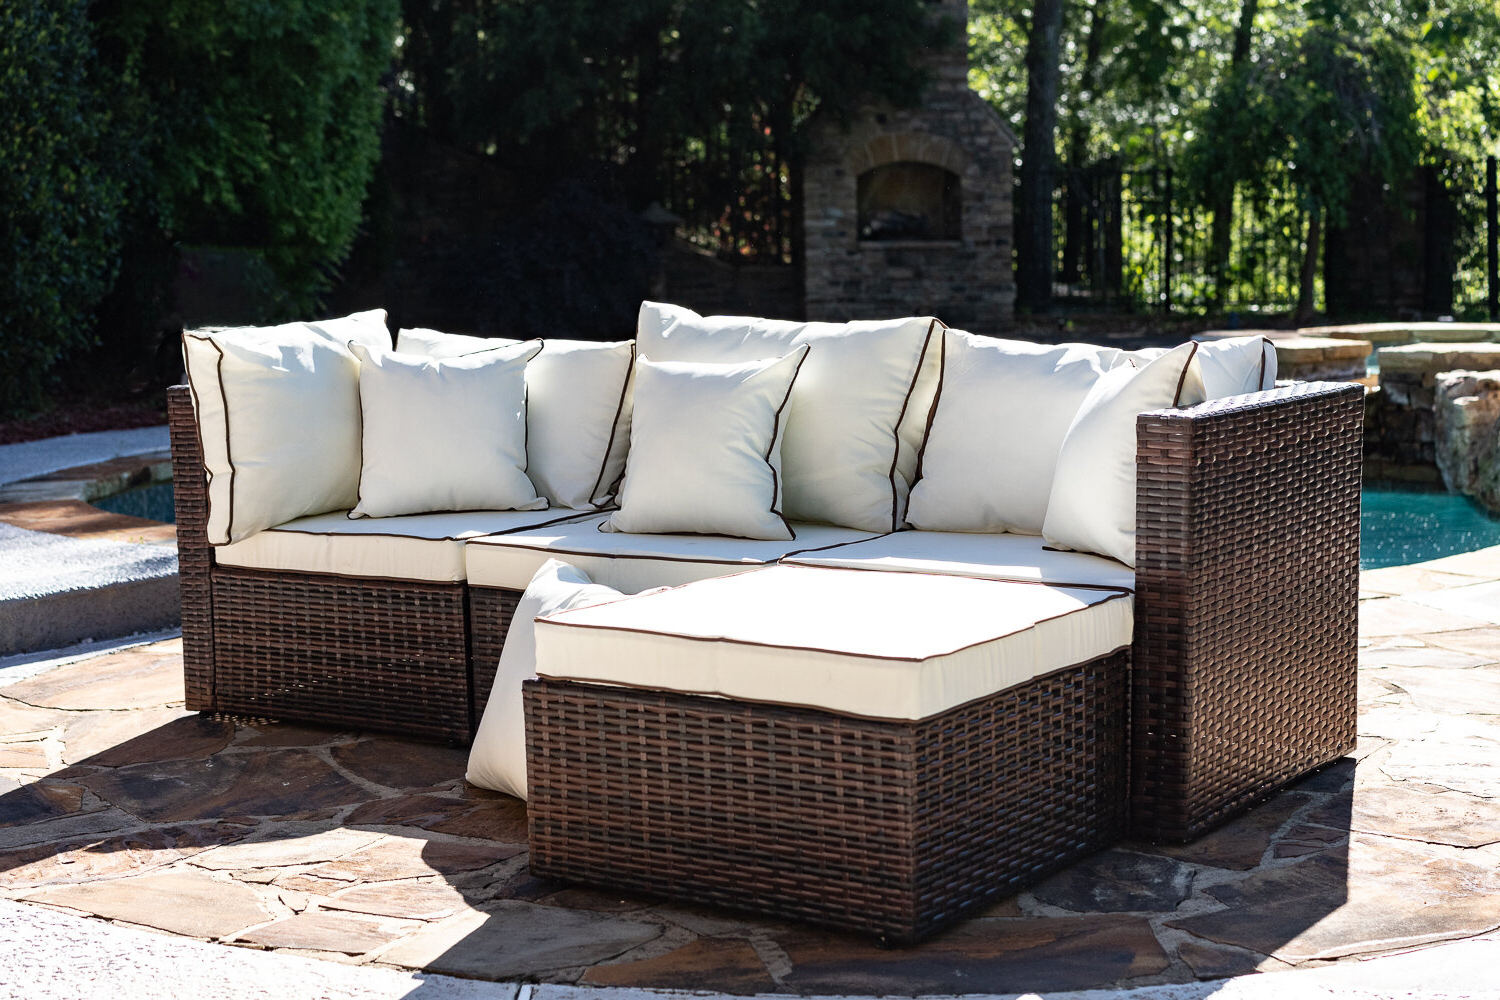 Birch Lane Throughout Meeks Patio Sofas With Cushions (View 10 of 20)